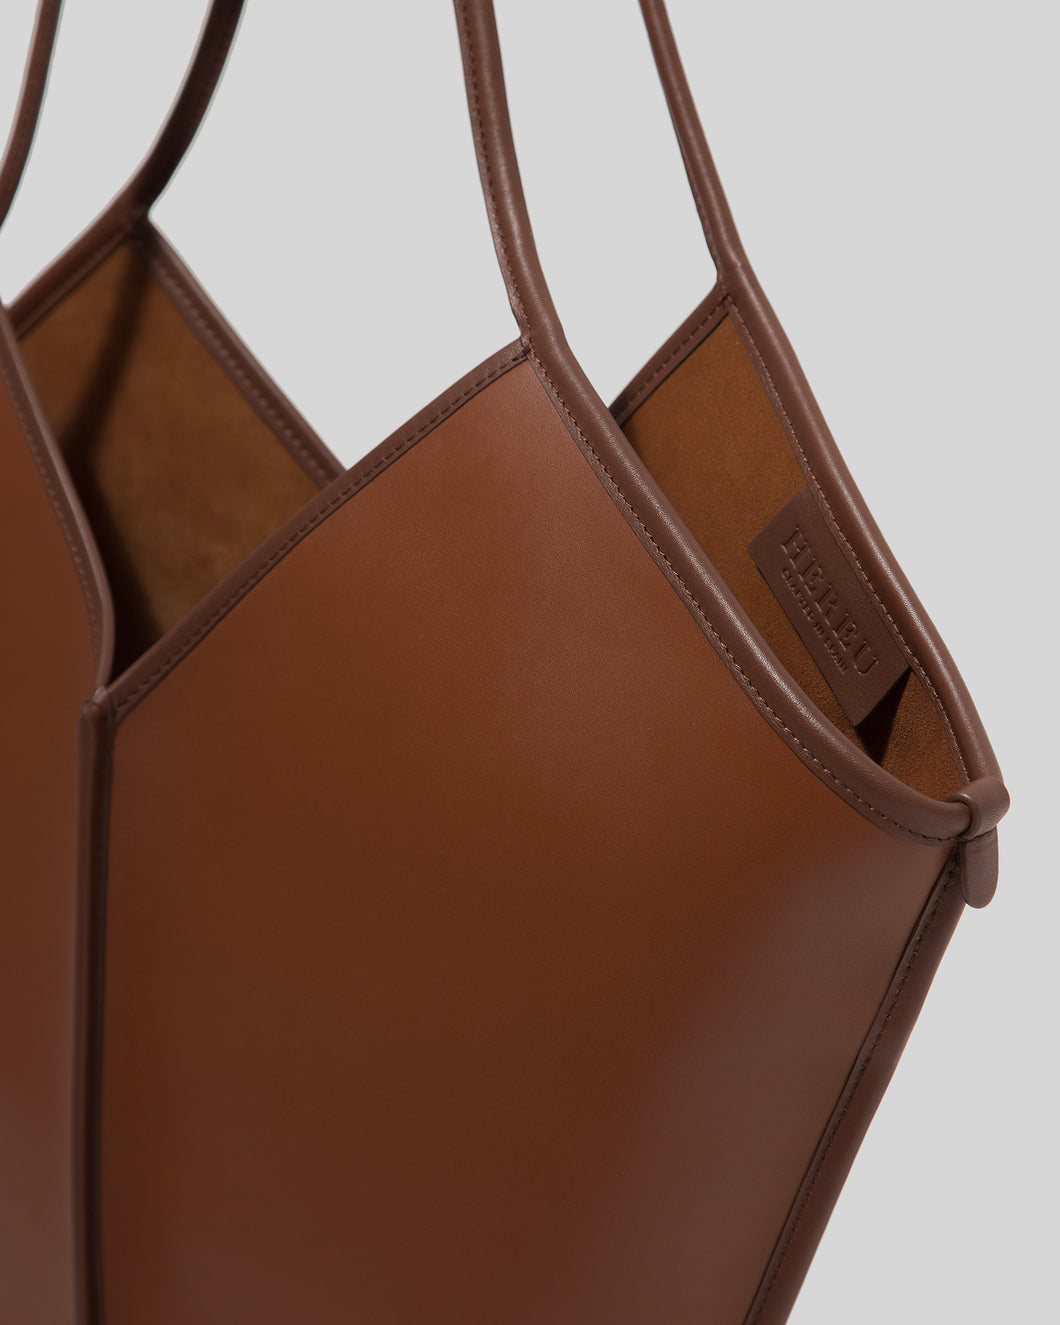 CALELLA - Contrast Binding Leather Tote